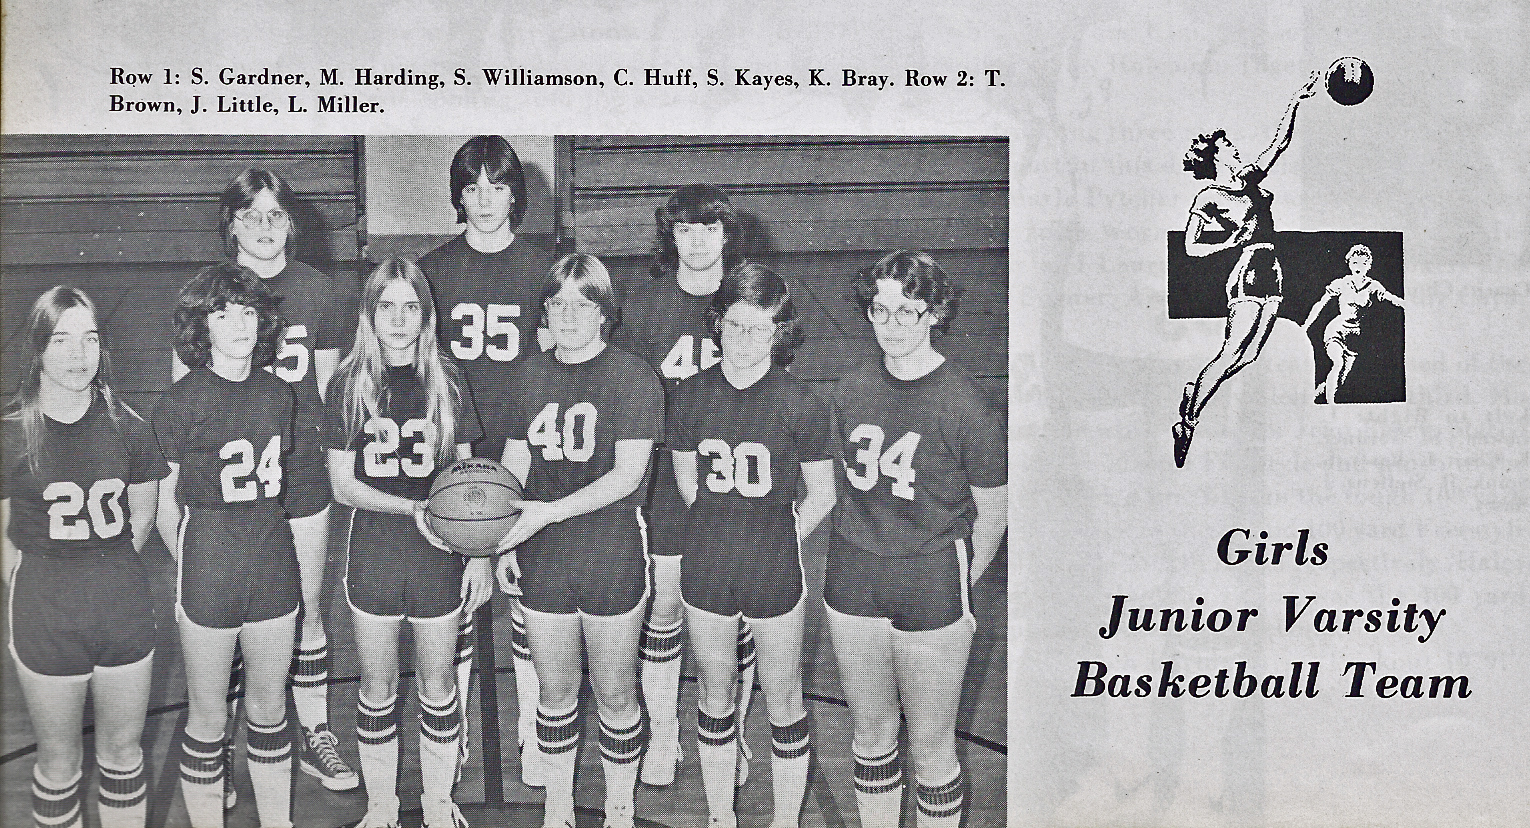 GirlsHoops/1979girlsJV_edited-1.jpg